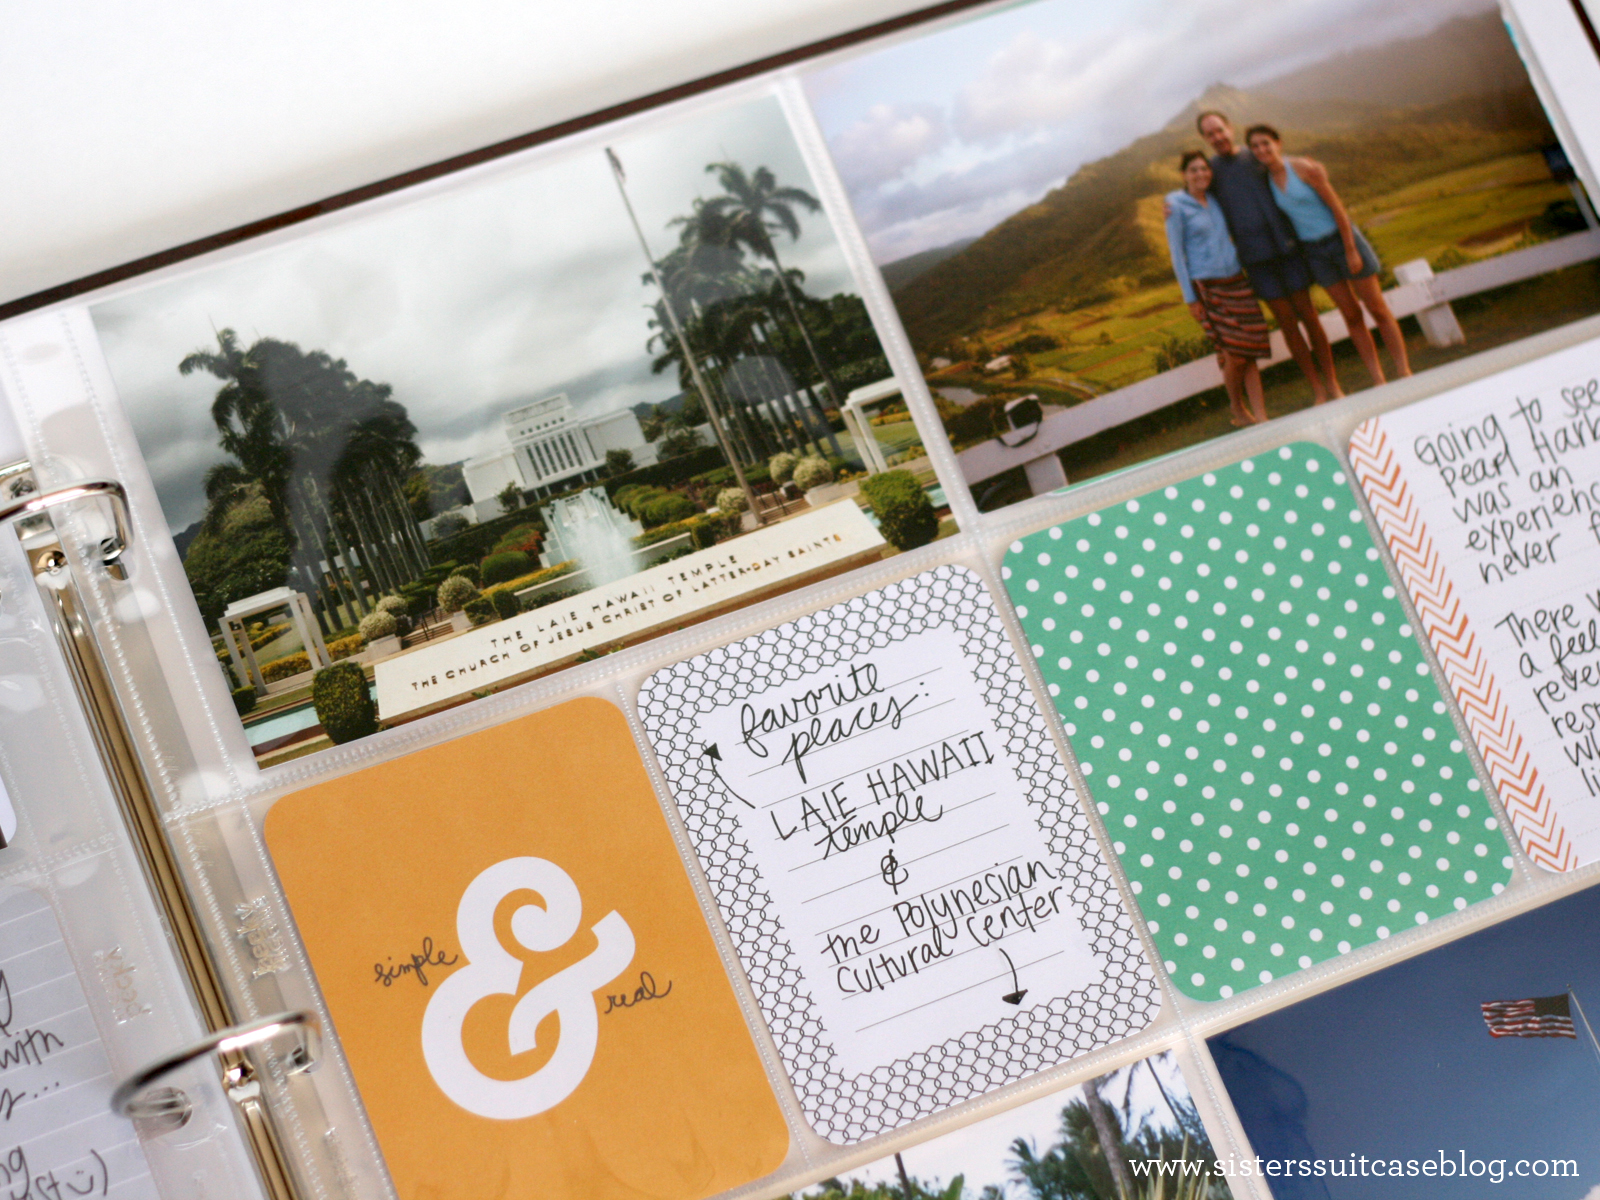 Scrapbook ideas hawaii - Wondering What Will Be Available On Hsn On The 25th The Kit Will Include A Binder A Big Pack Of Photo Pocket Pages And The Core Kit In Either Jade Or